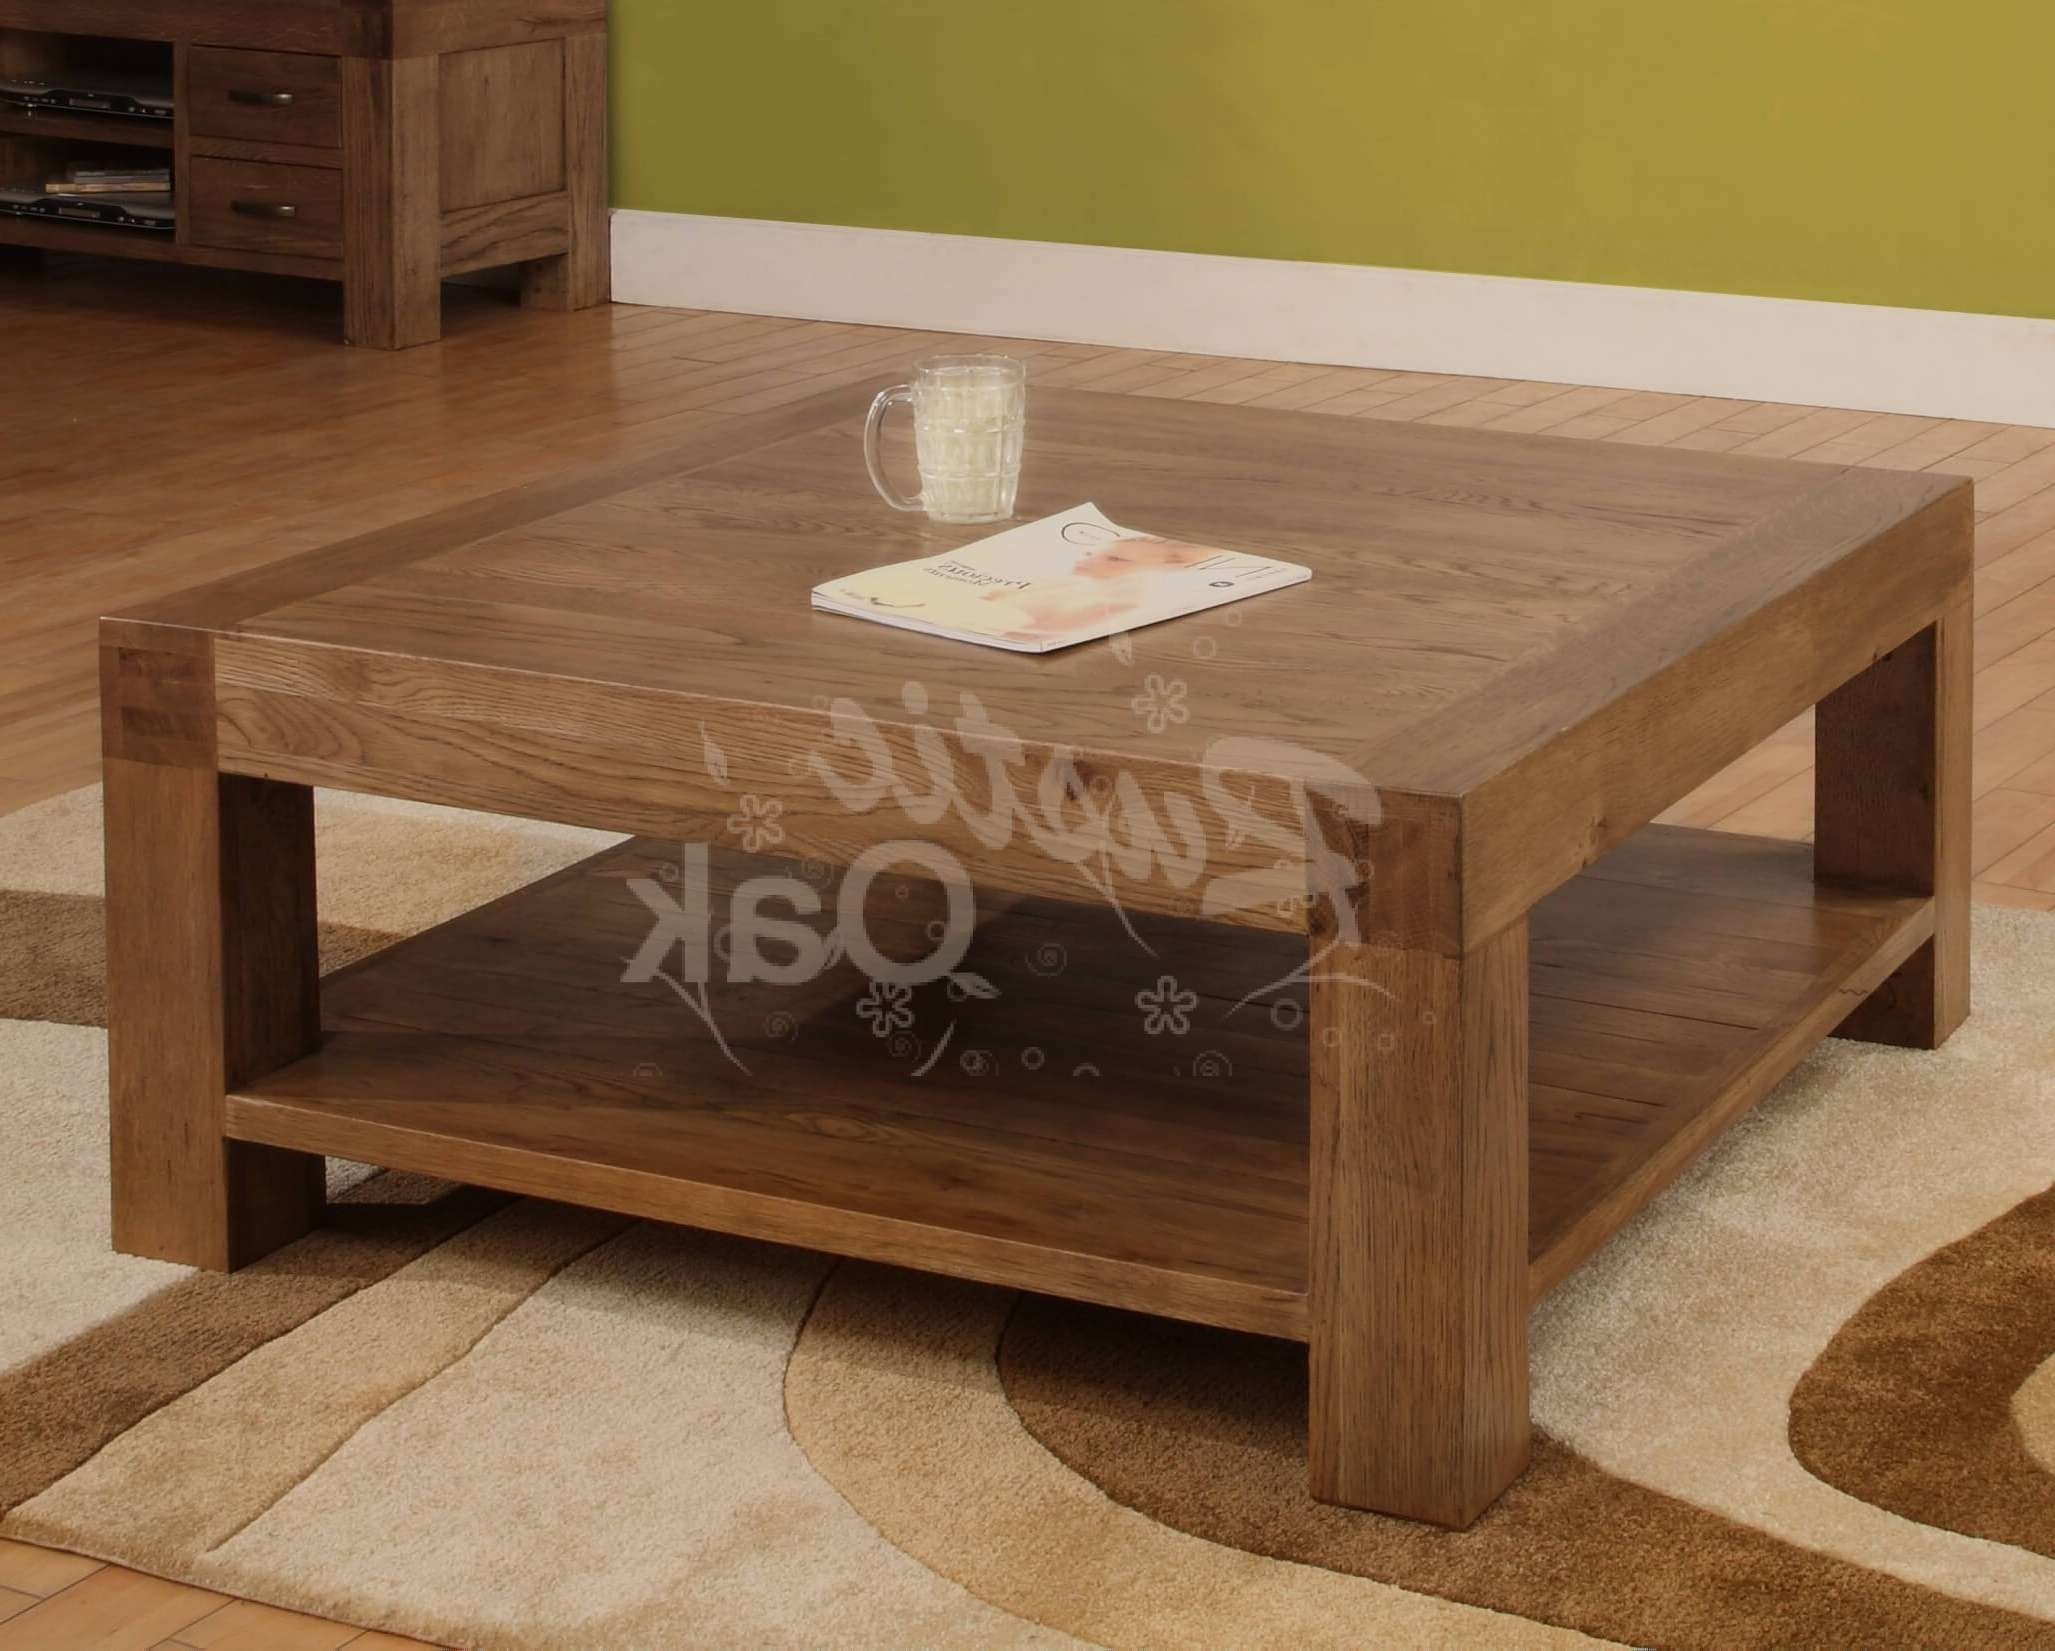 Widely Used Square Oak Coffee Tables Regarding Big Square Coffee Table Wood Tags : Solid Wood Block Coffee Table (View 19 of 20)